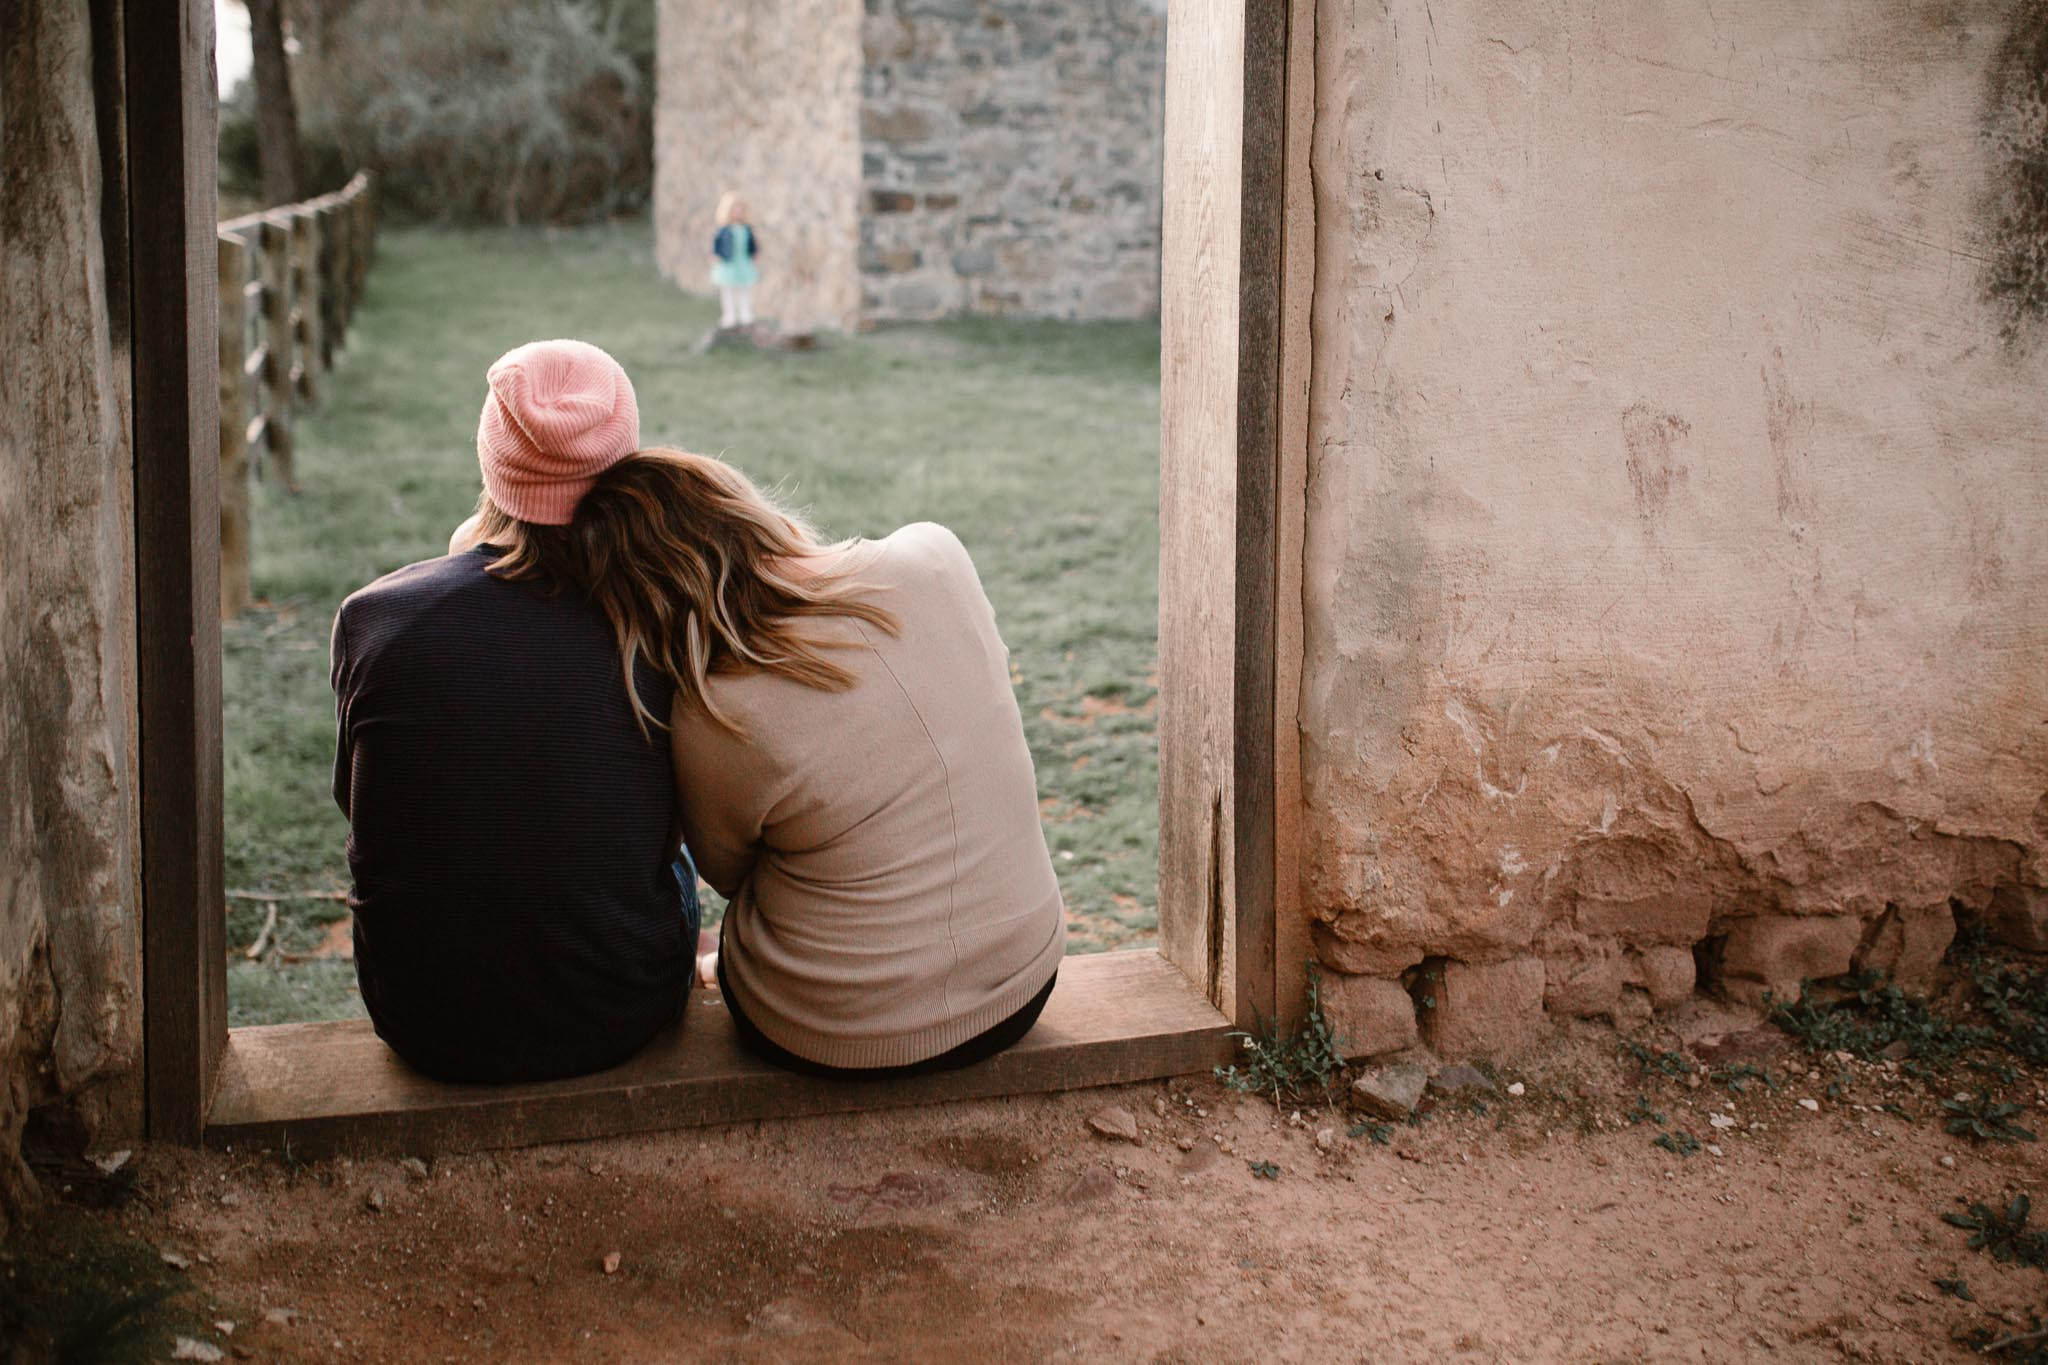 Couple sits together and watches their young daughter play at Red Rock Overlook in Leesburg, VA